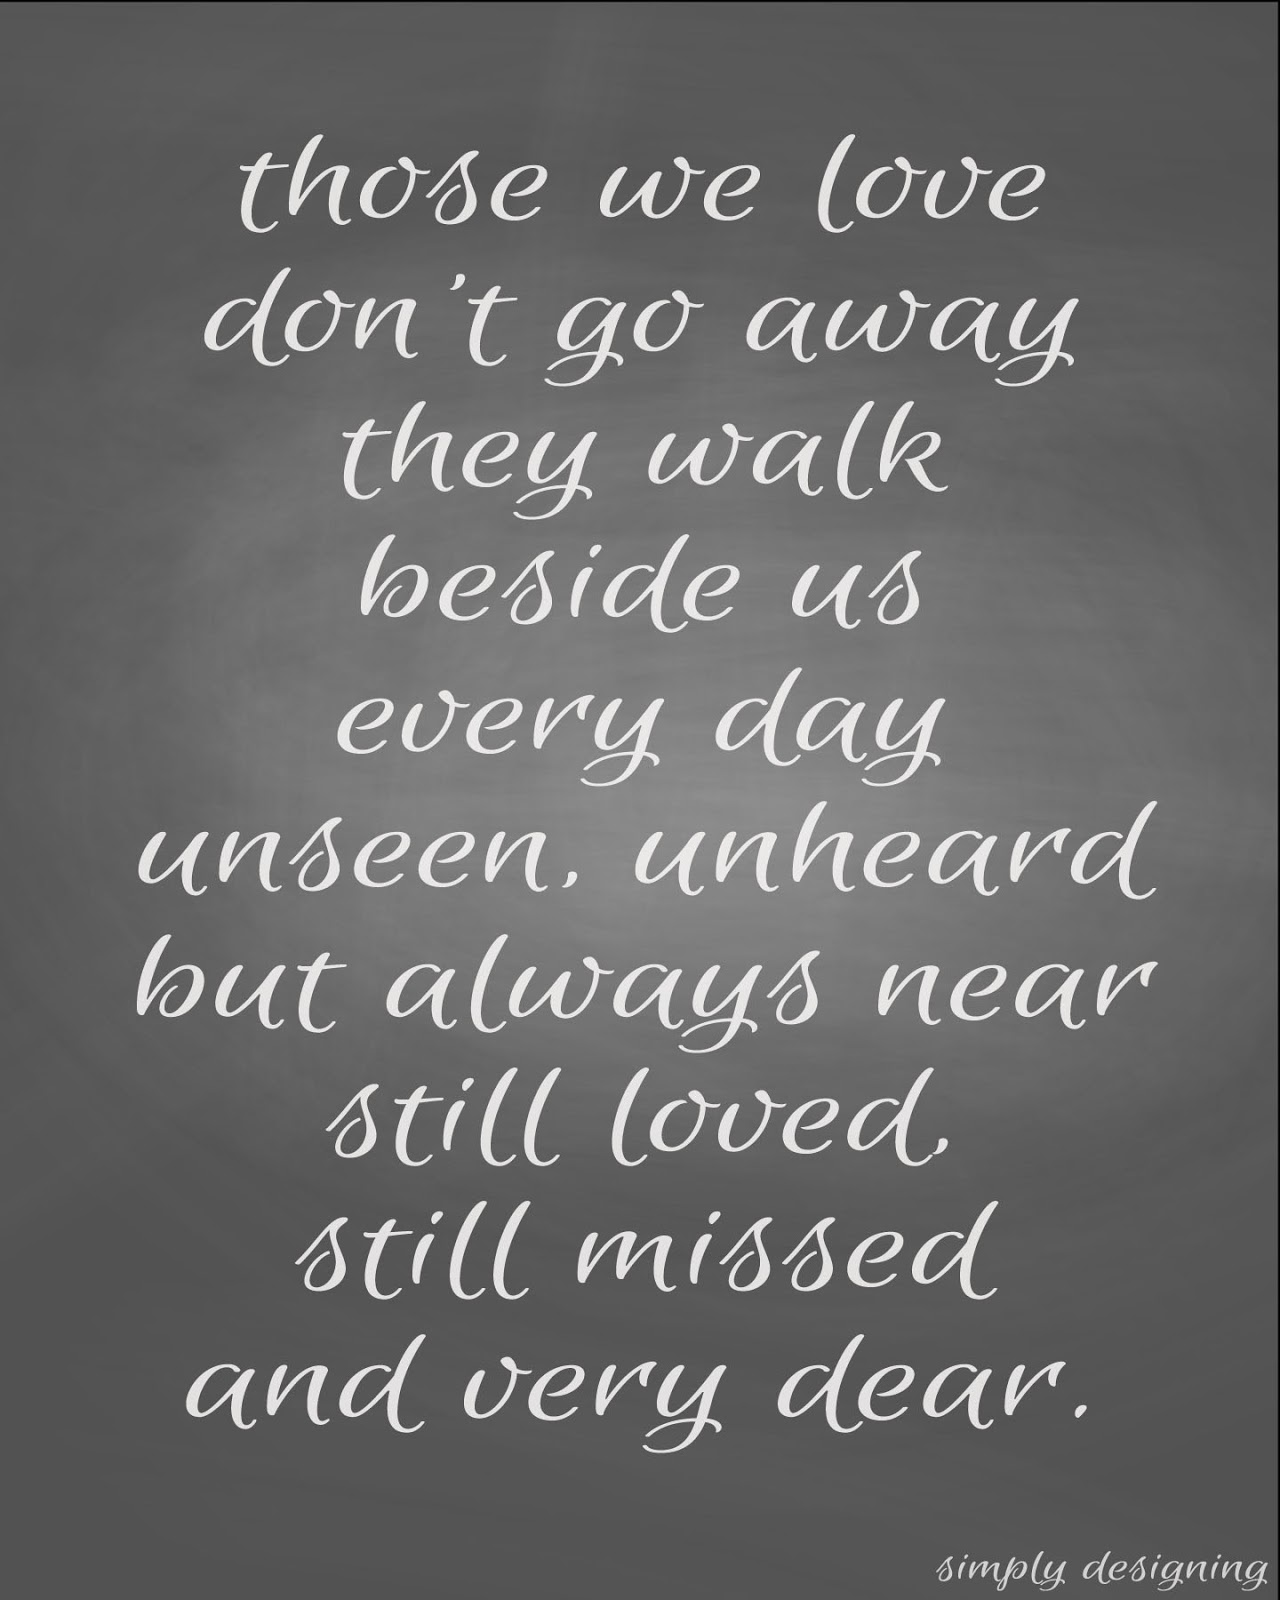 Quotes Of Loved Ones: Quotes About Loved Ones Who Have Passed Away. QuotesGram